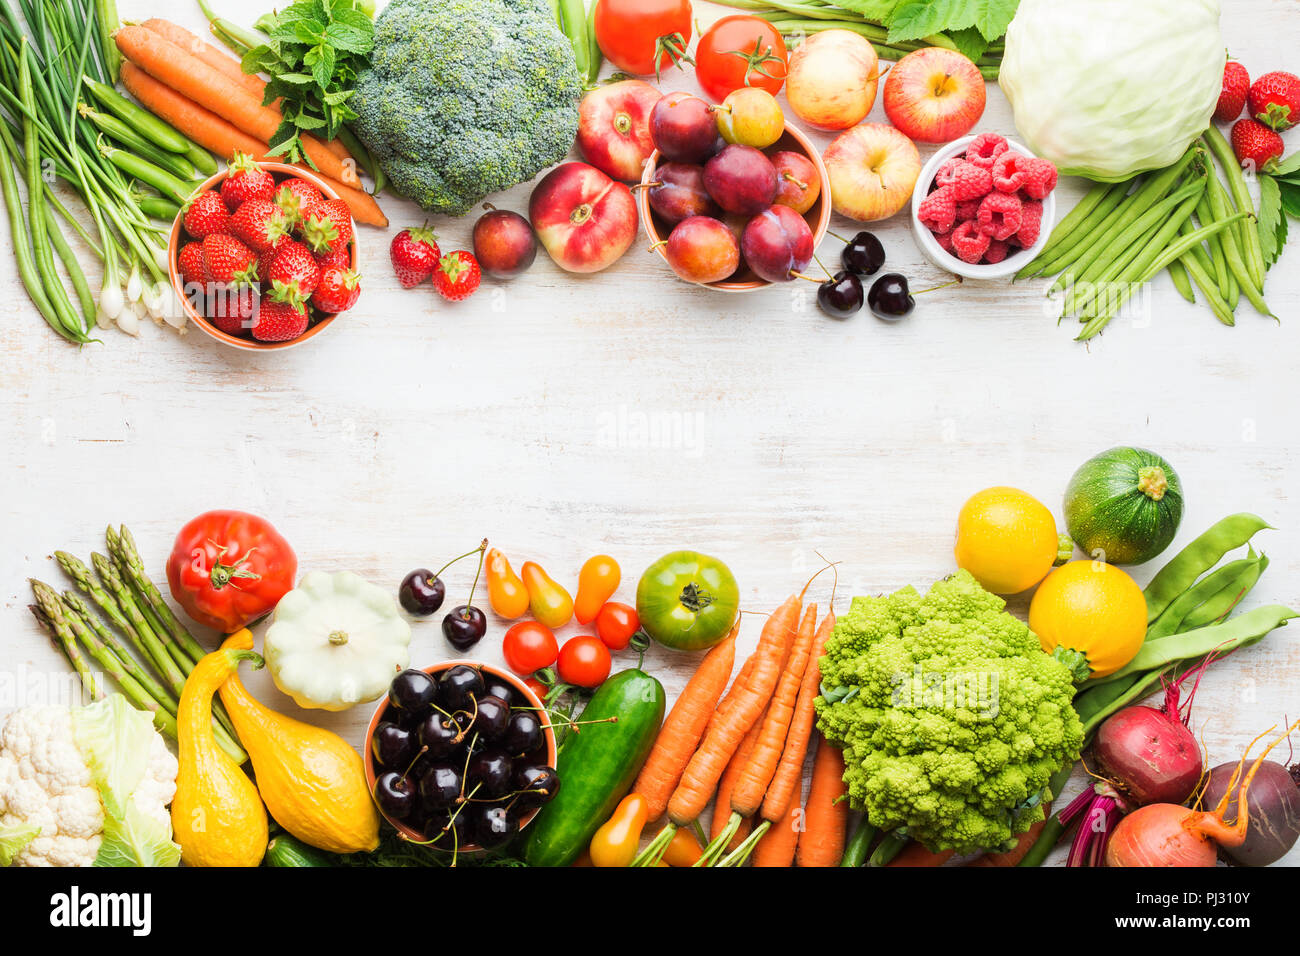 Summer fruits vegetables berries, apples cherries peaches strawberries cabbage broccoli cauliflower squash tomatoes carrots spring onions beans beetroot, copy space, top view, selective focus Stock Photo